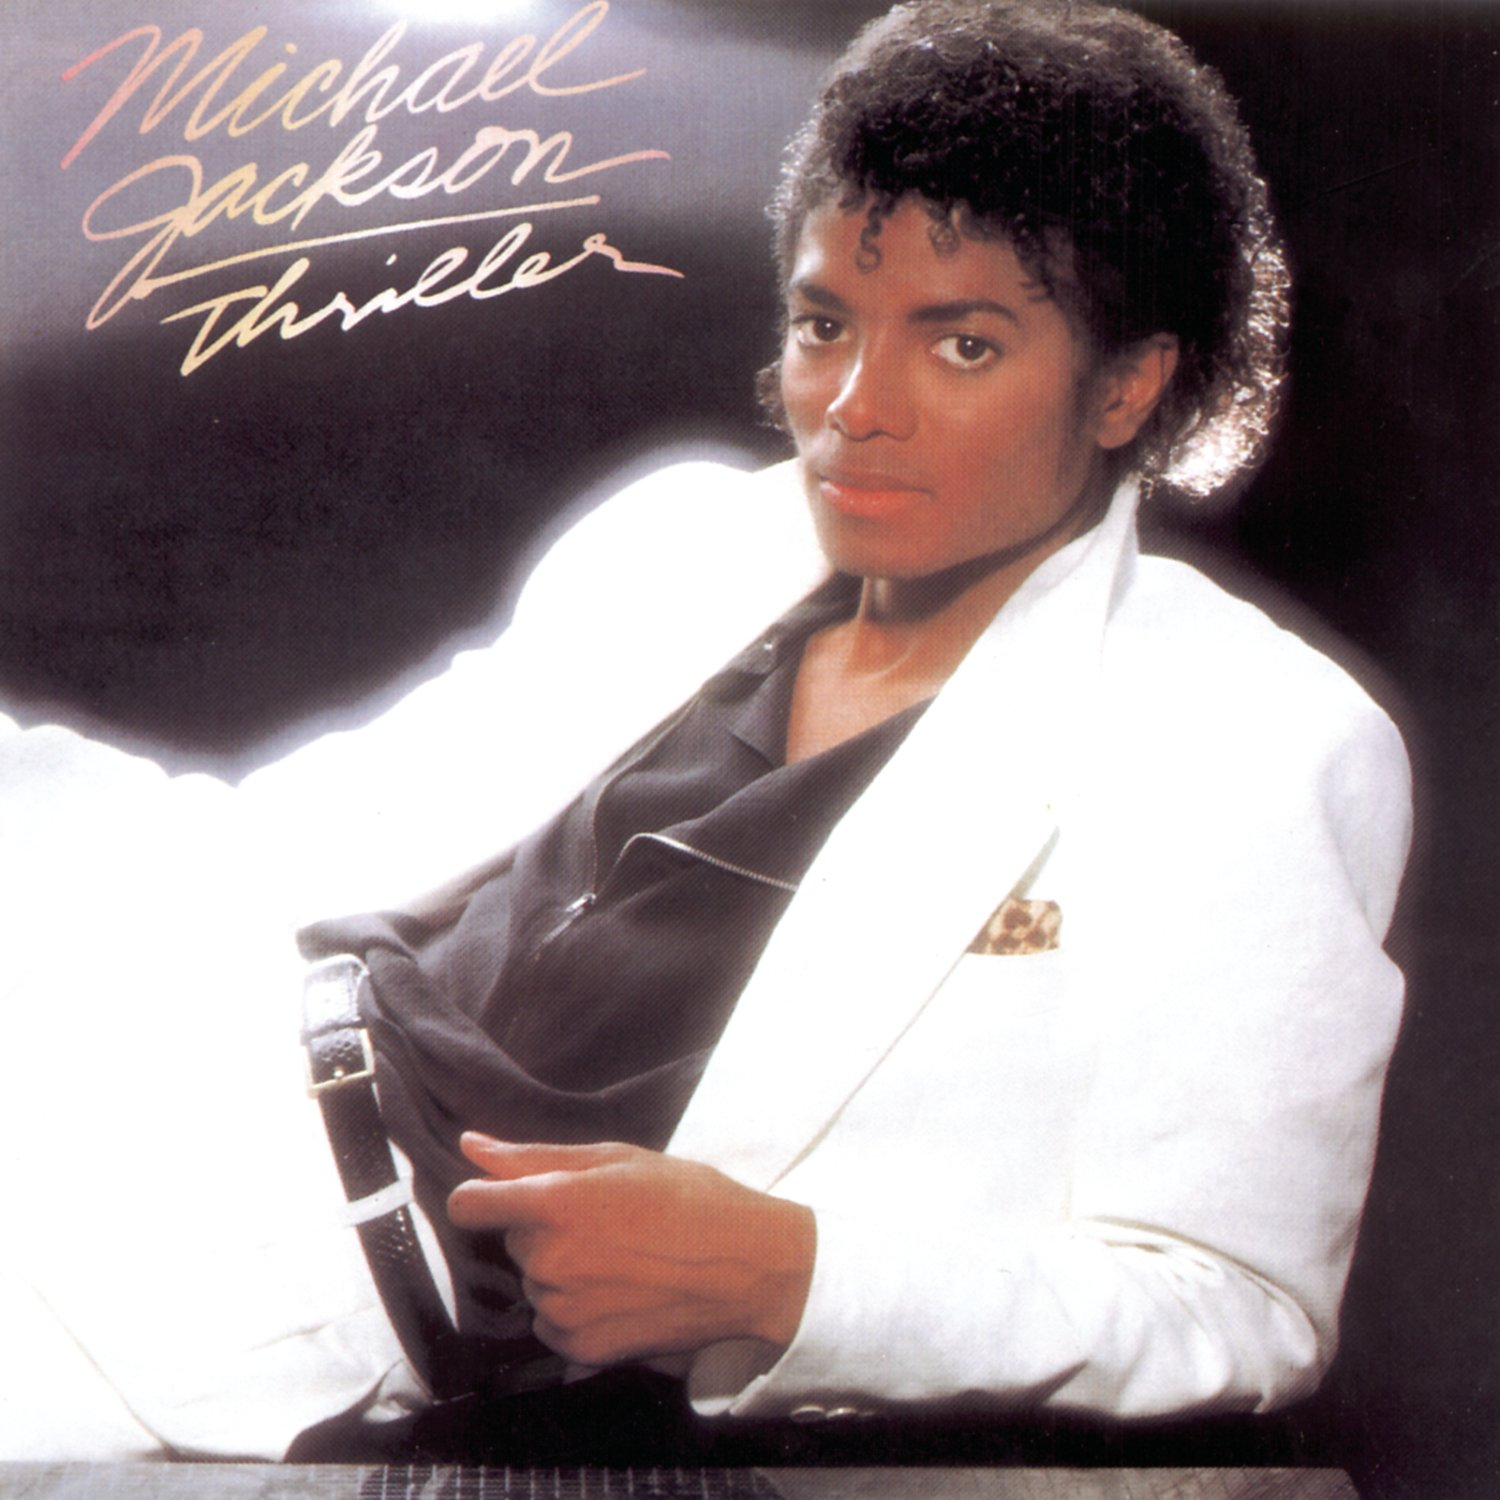 michael jackson thriller best-selling album in history